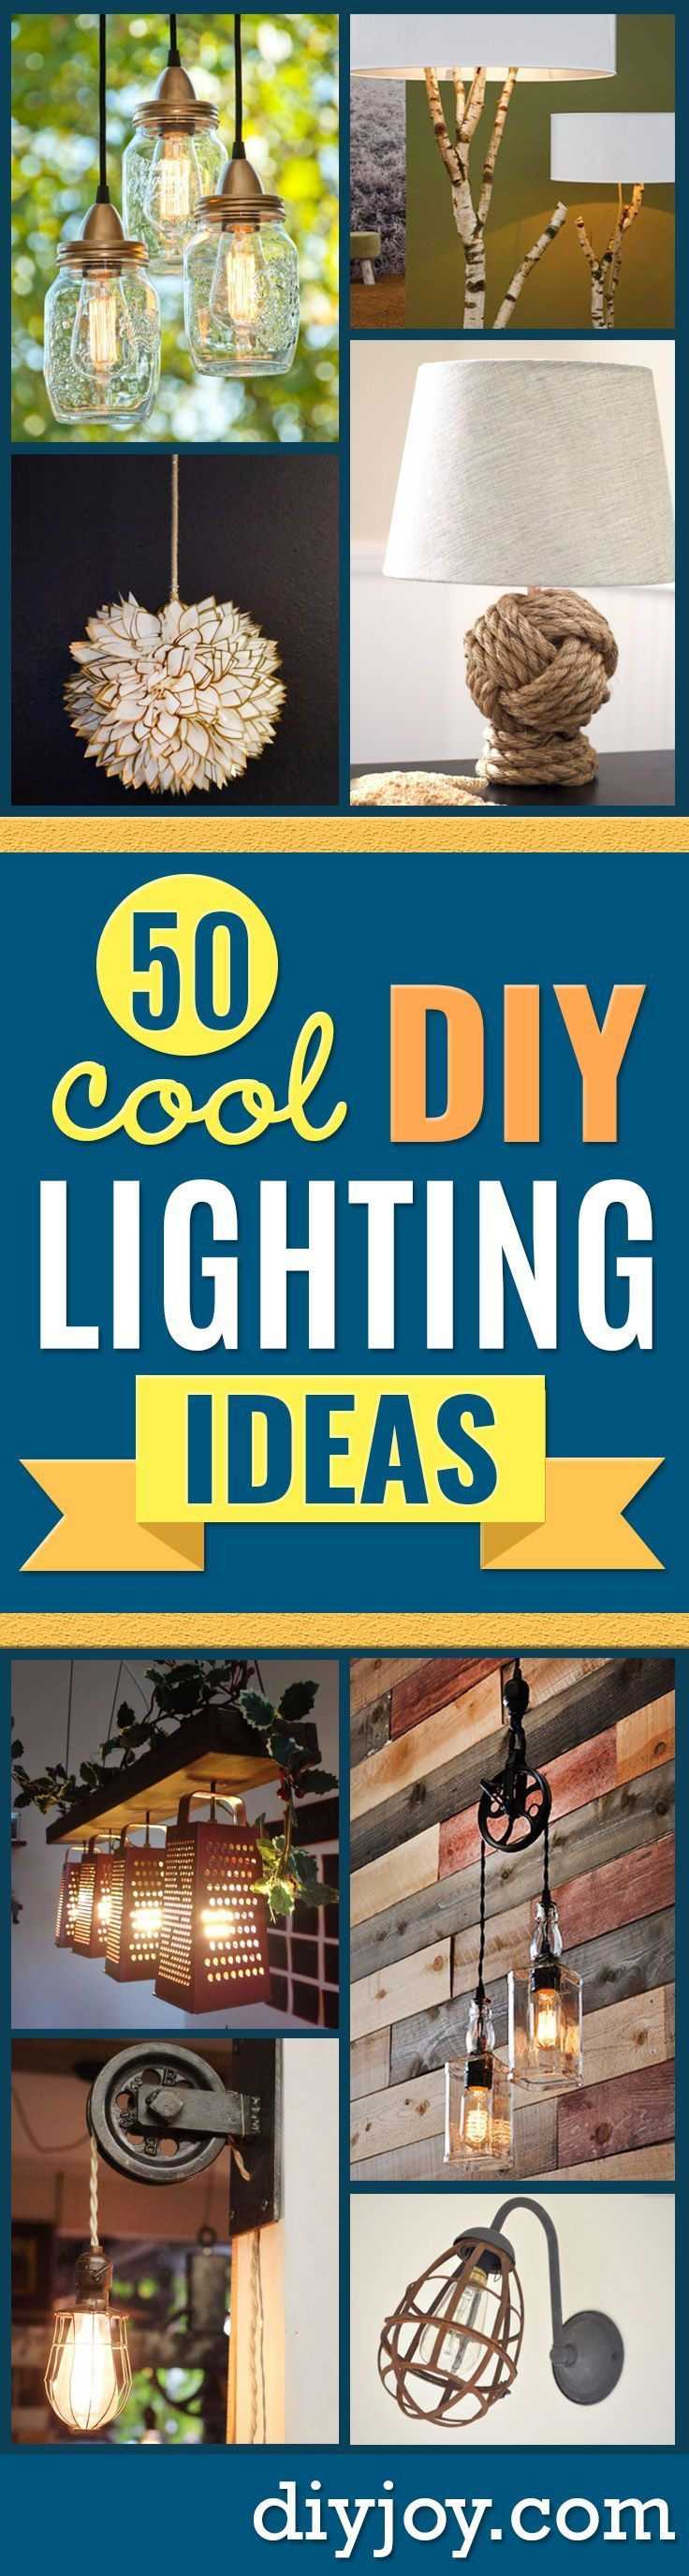 Diy lighting ideas and cool diy light projects for the home easy diy lighting ideas and cool diy light projects for the home easy diy ideas for chandeliers lights lamps awesome pendants and creative hanging solutioingenieria Image collections